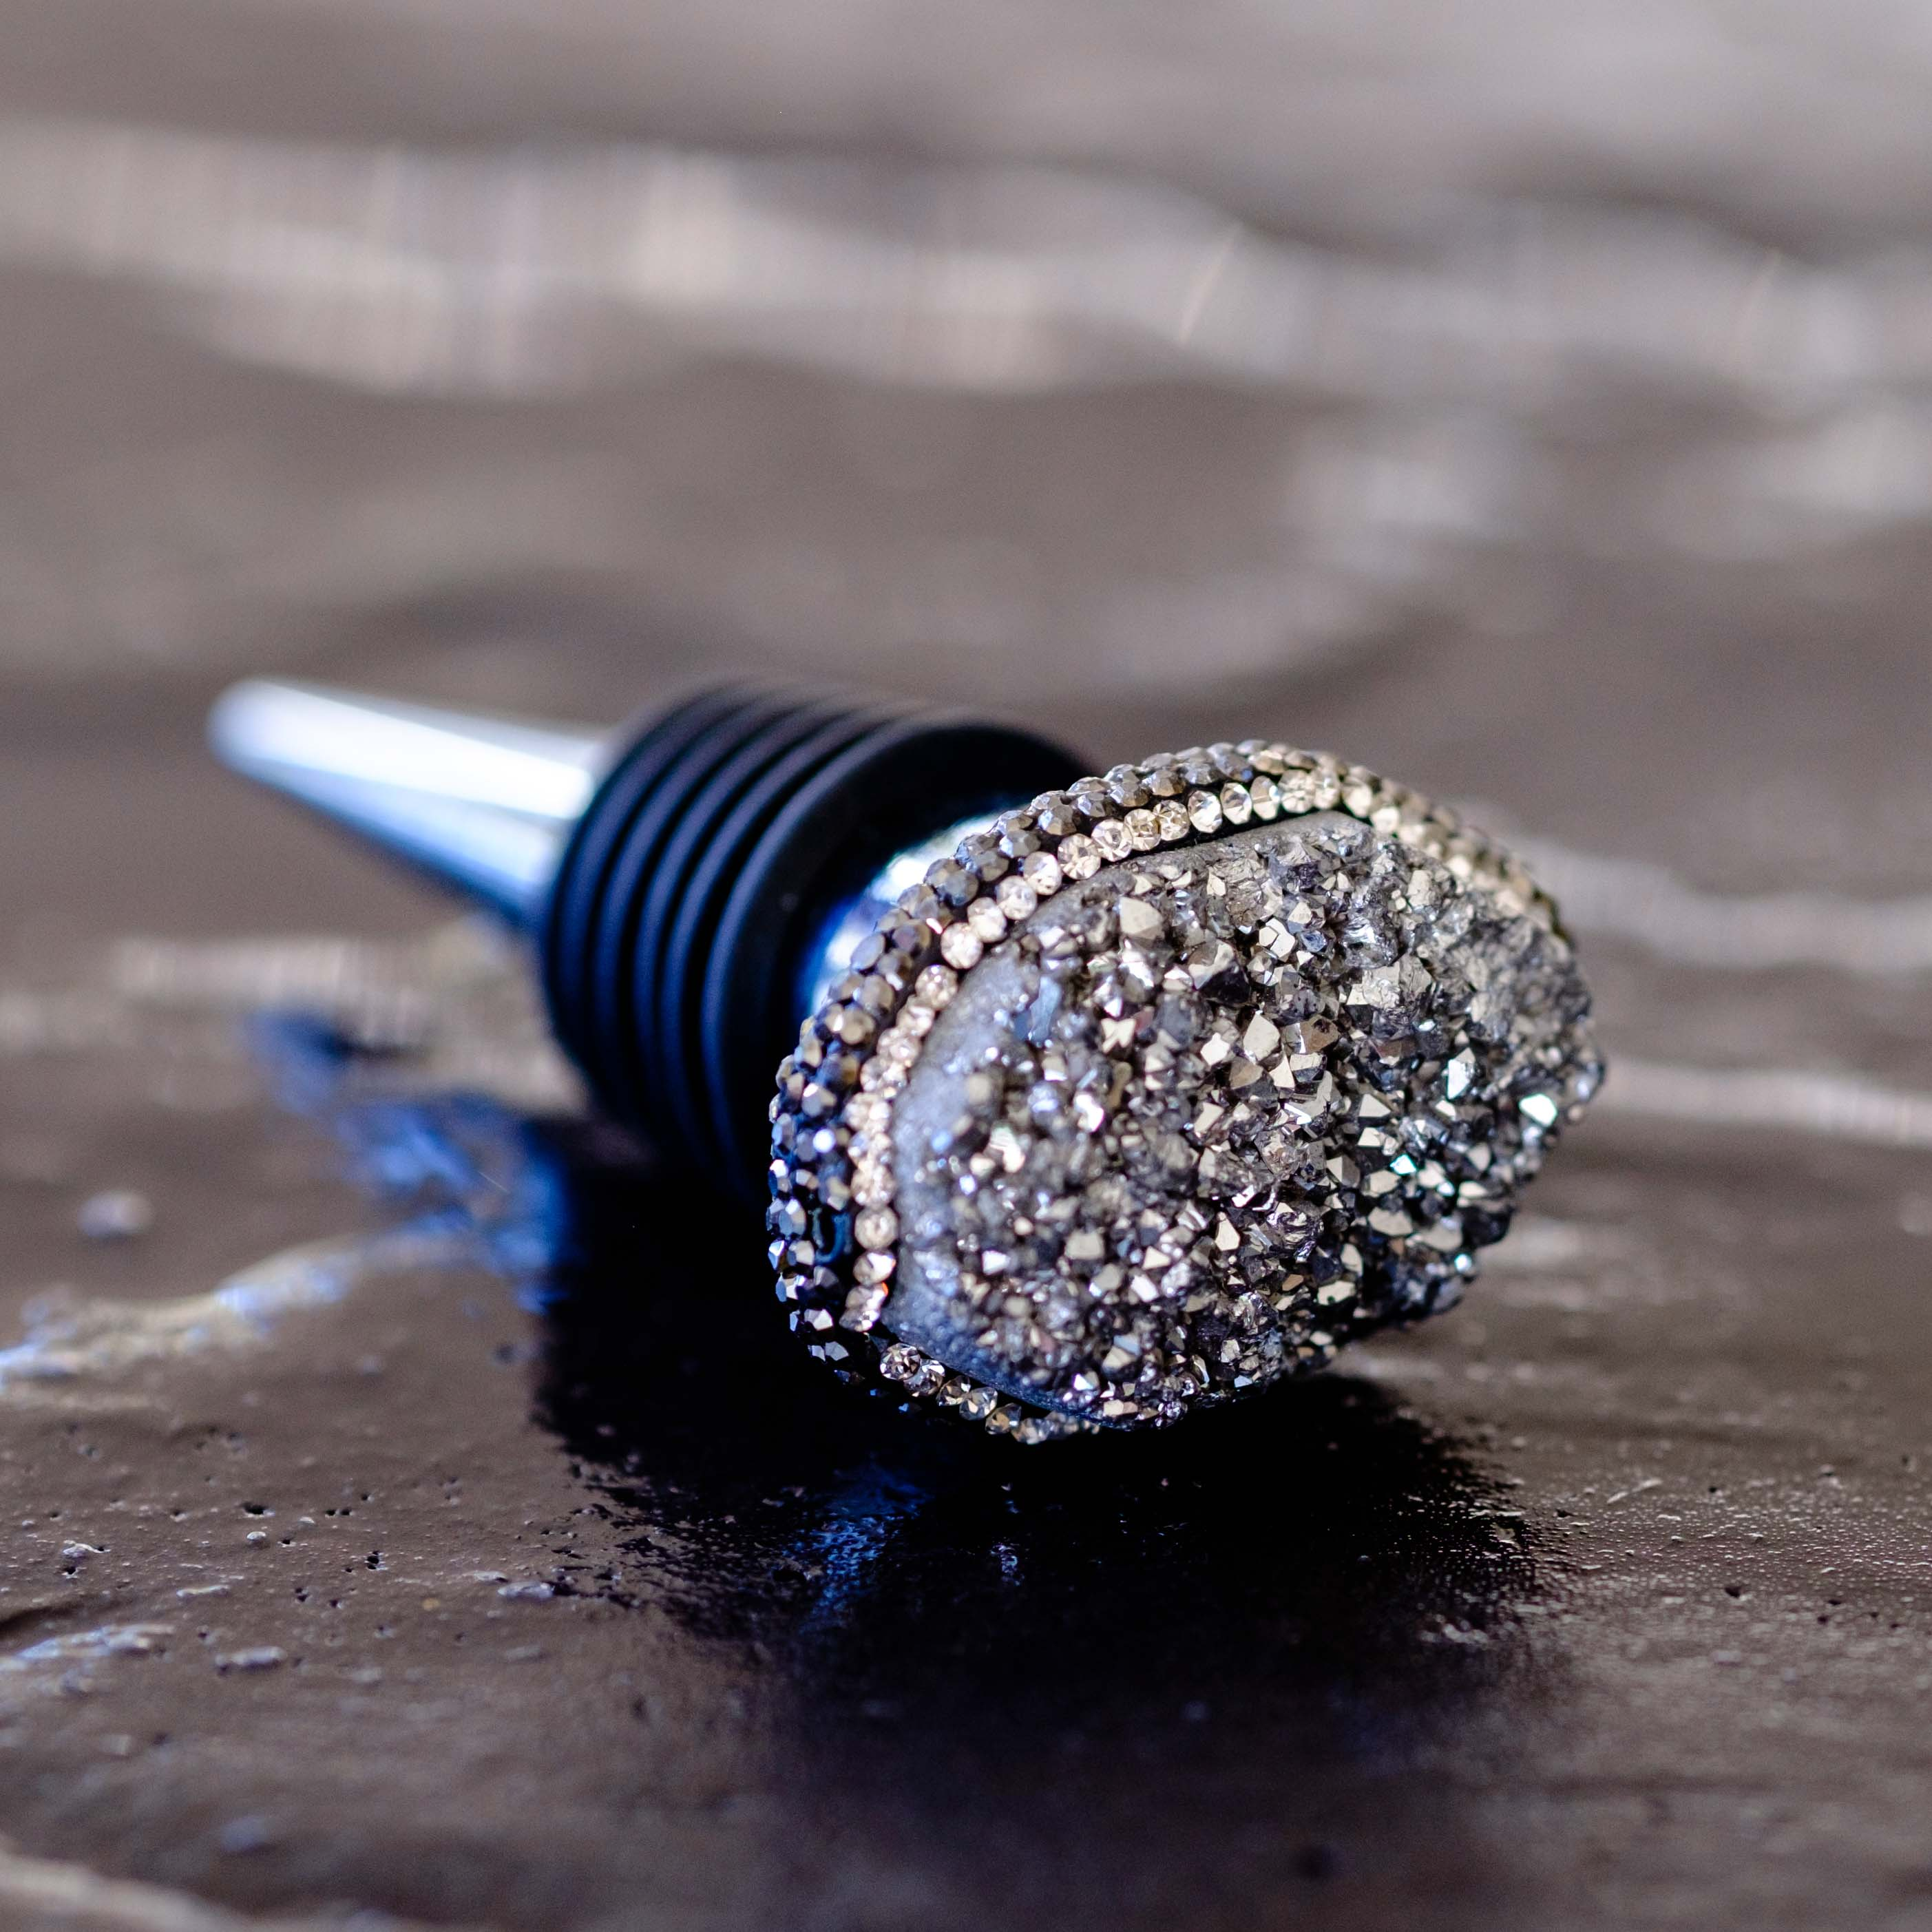 Silver druzy wine stopper by Mapleton Drive